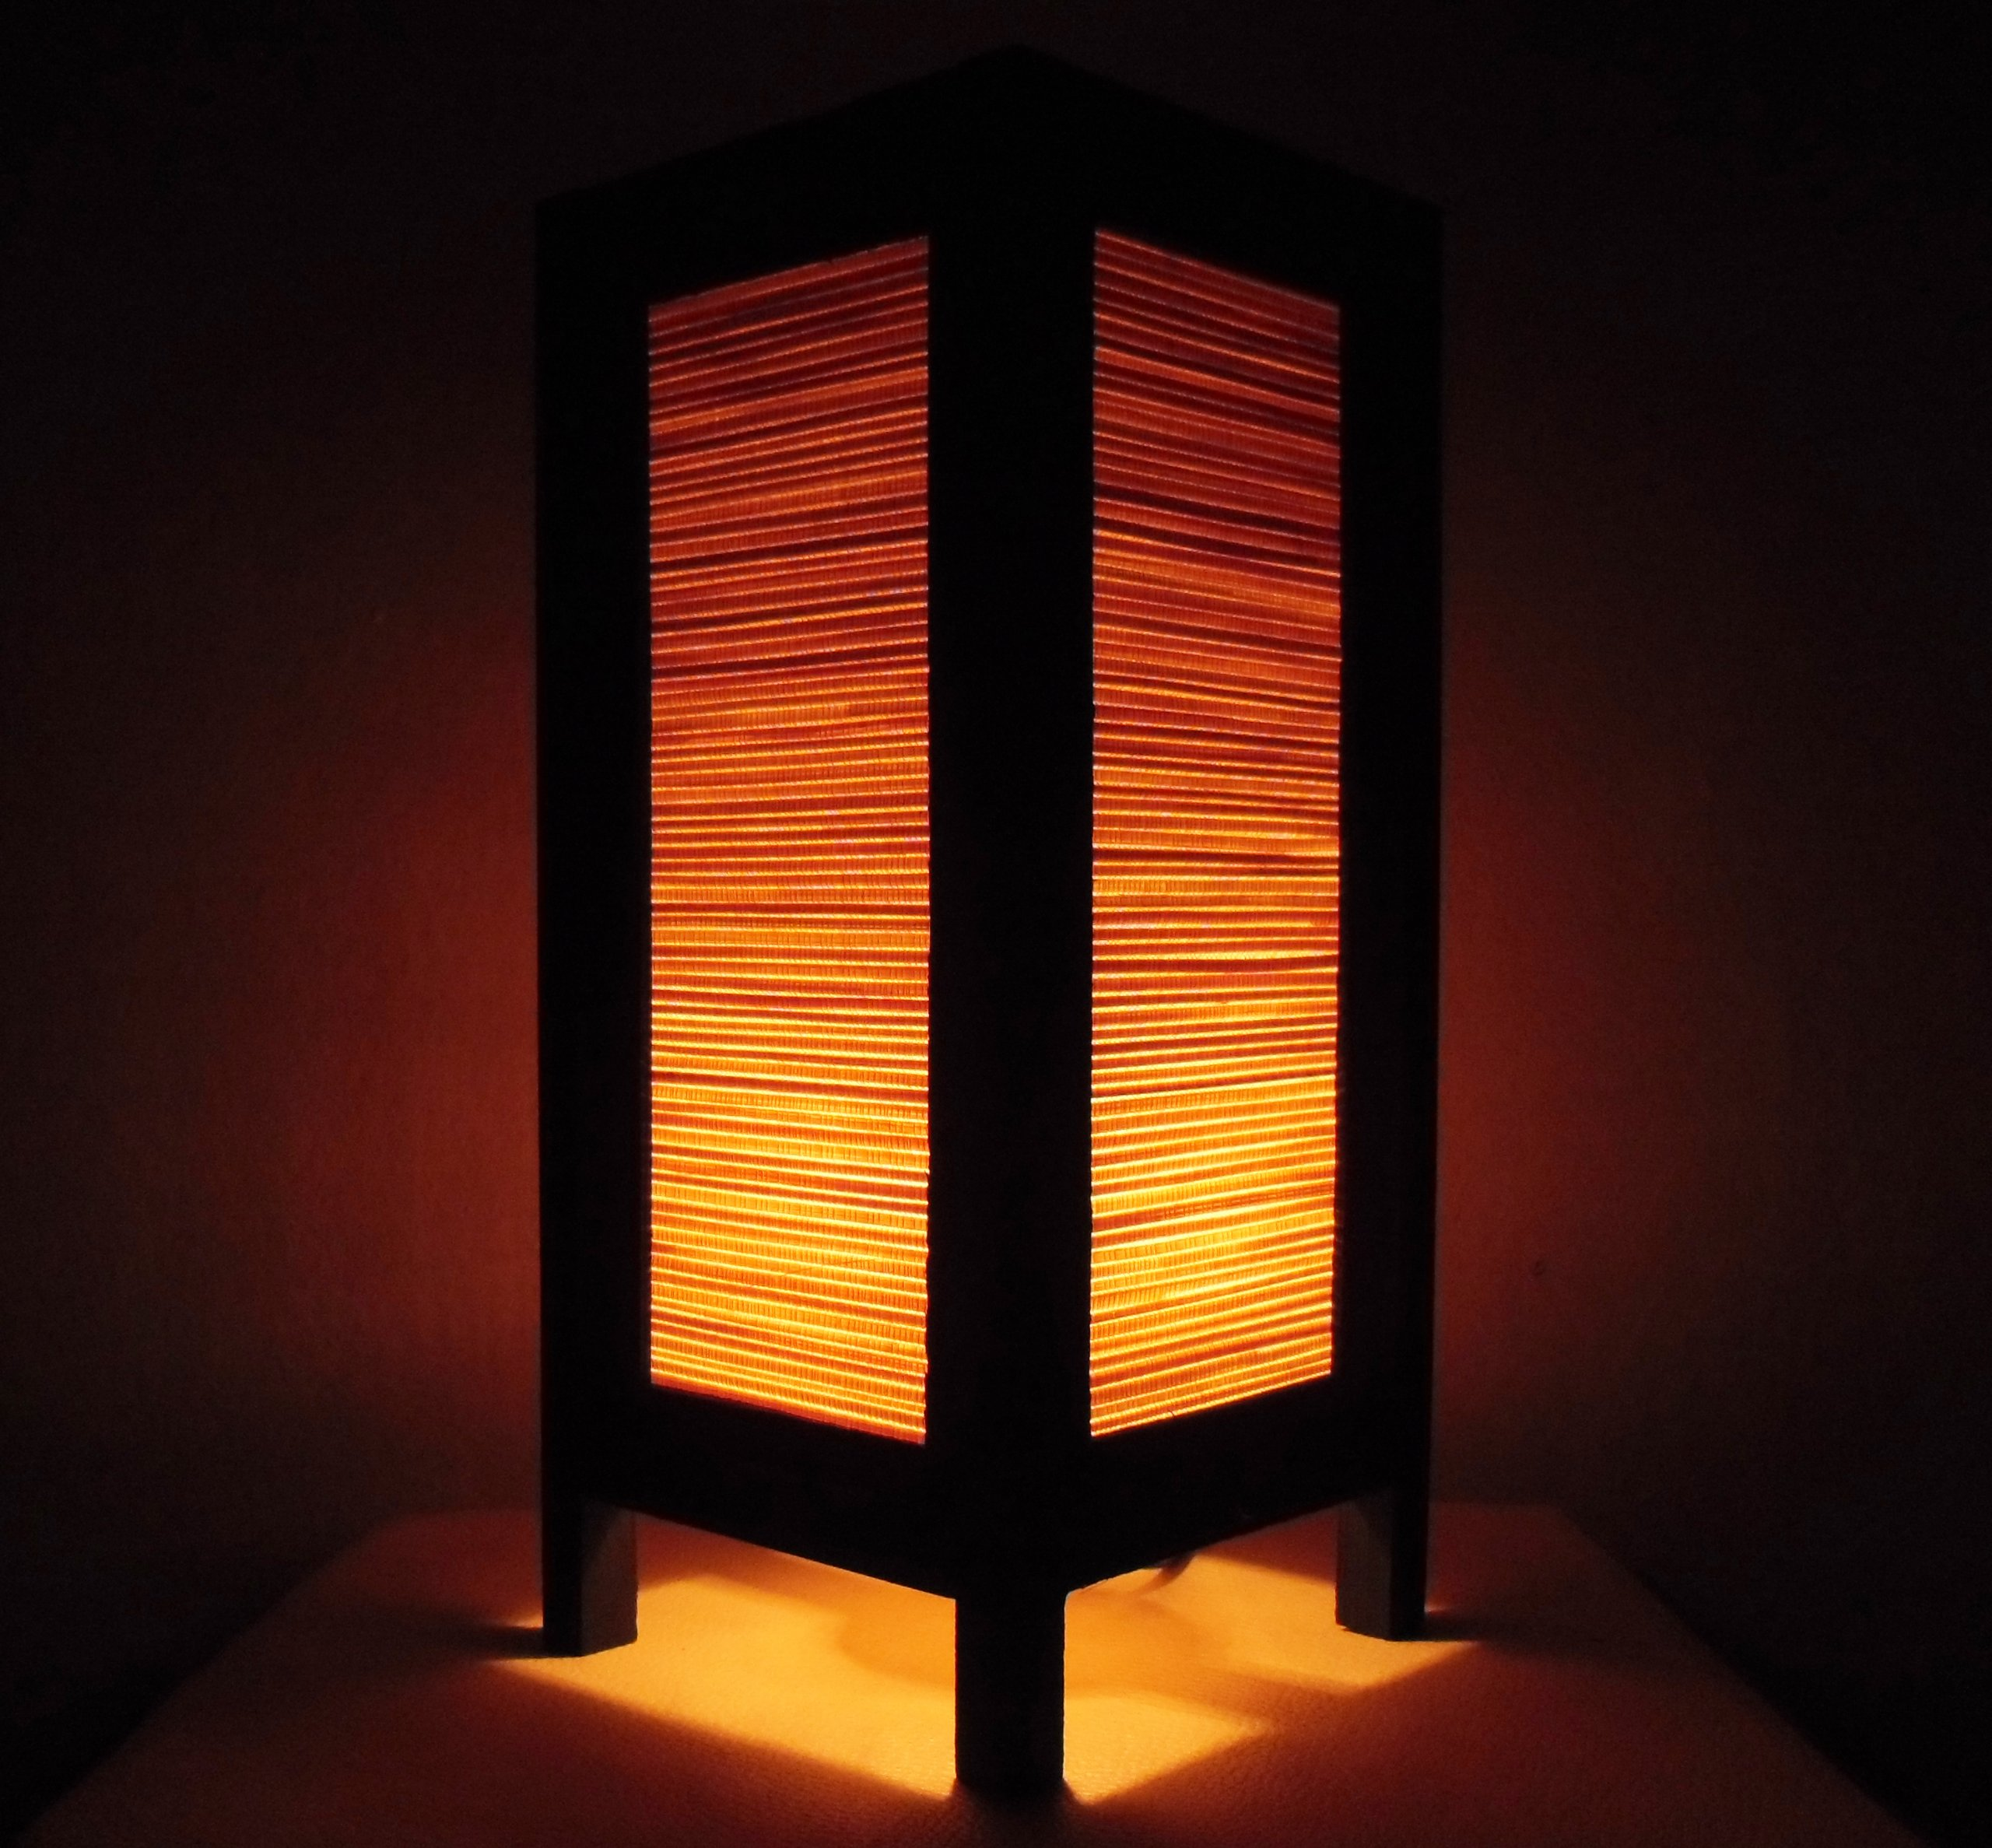 Thai Vintage Handmade ASIAN Oriental Classic Bamboo Art Bedside Table Light or Floor Wood Paper Lamp Shades Home Bedroom Garden Decor Modern Design from Thailand by Red berry Thailand Lanna Lamp